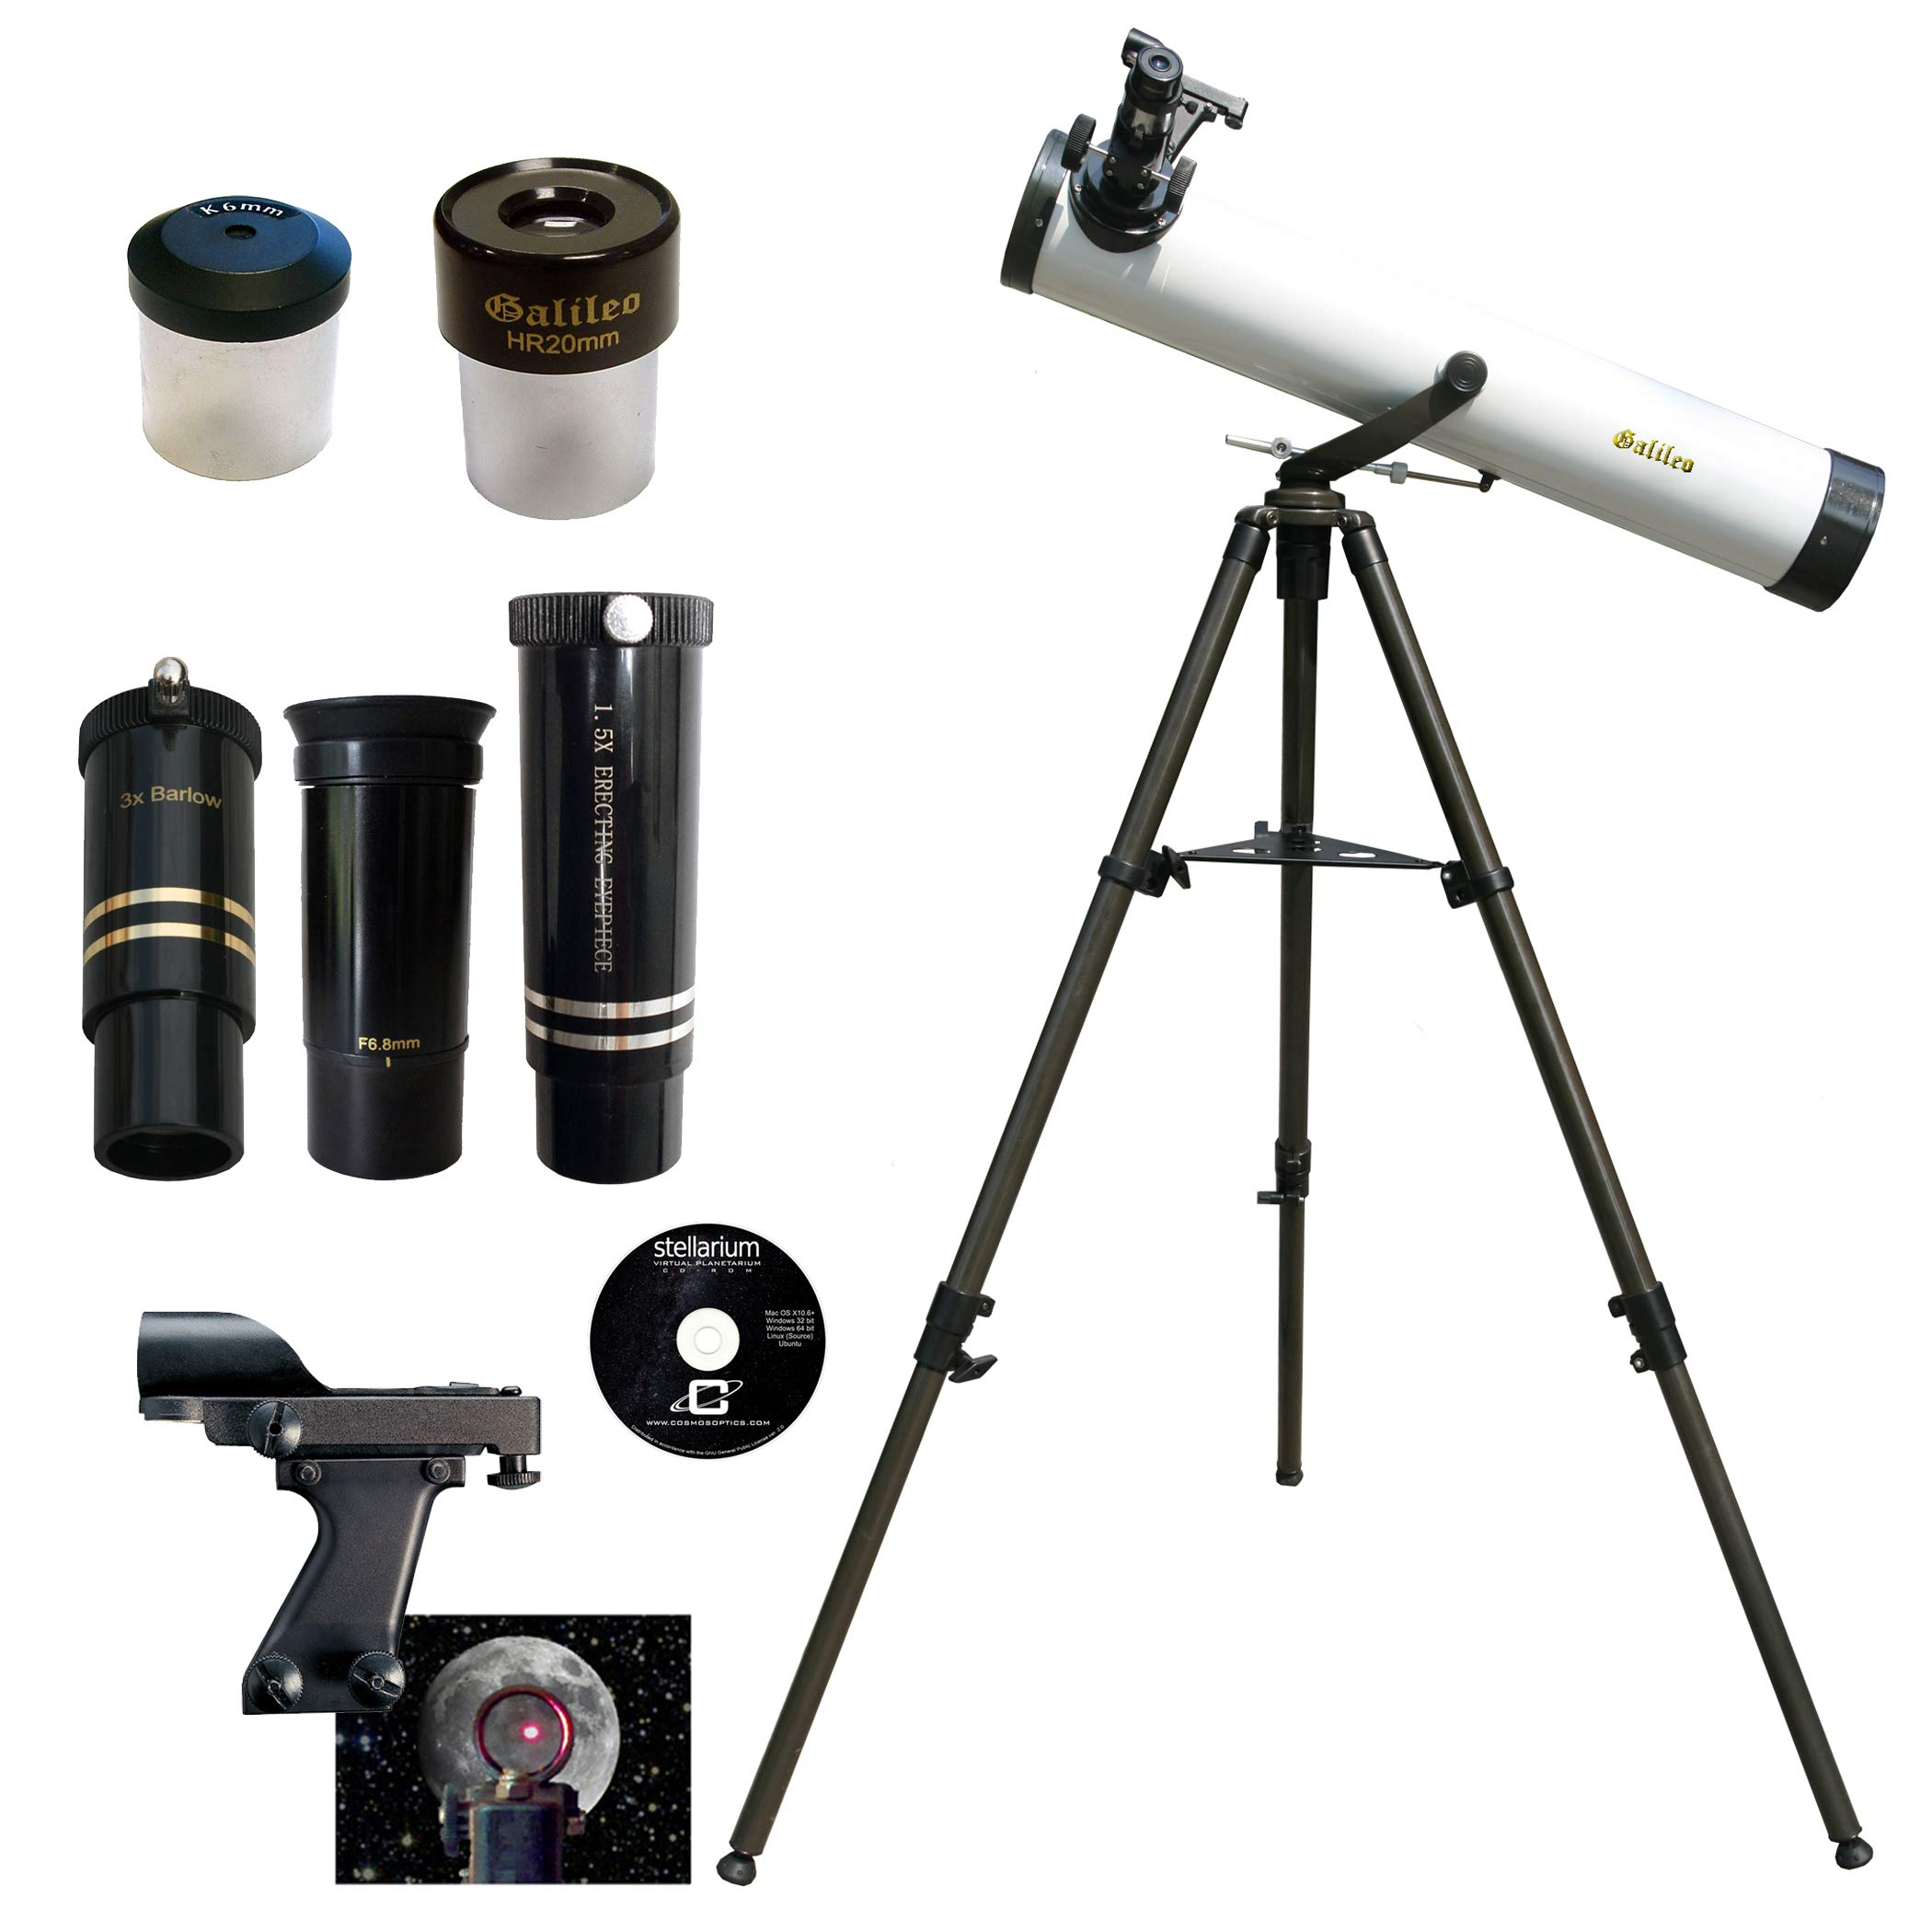 Galileo 800mm x 80mm Astronomical Telescope Kit with Zoom Lens by Galileo